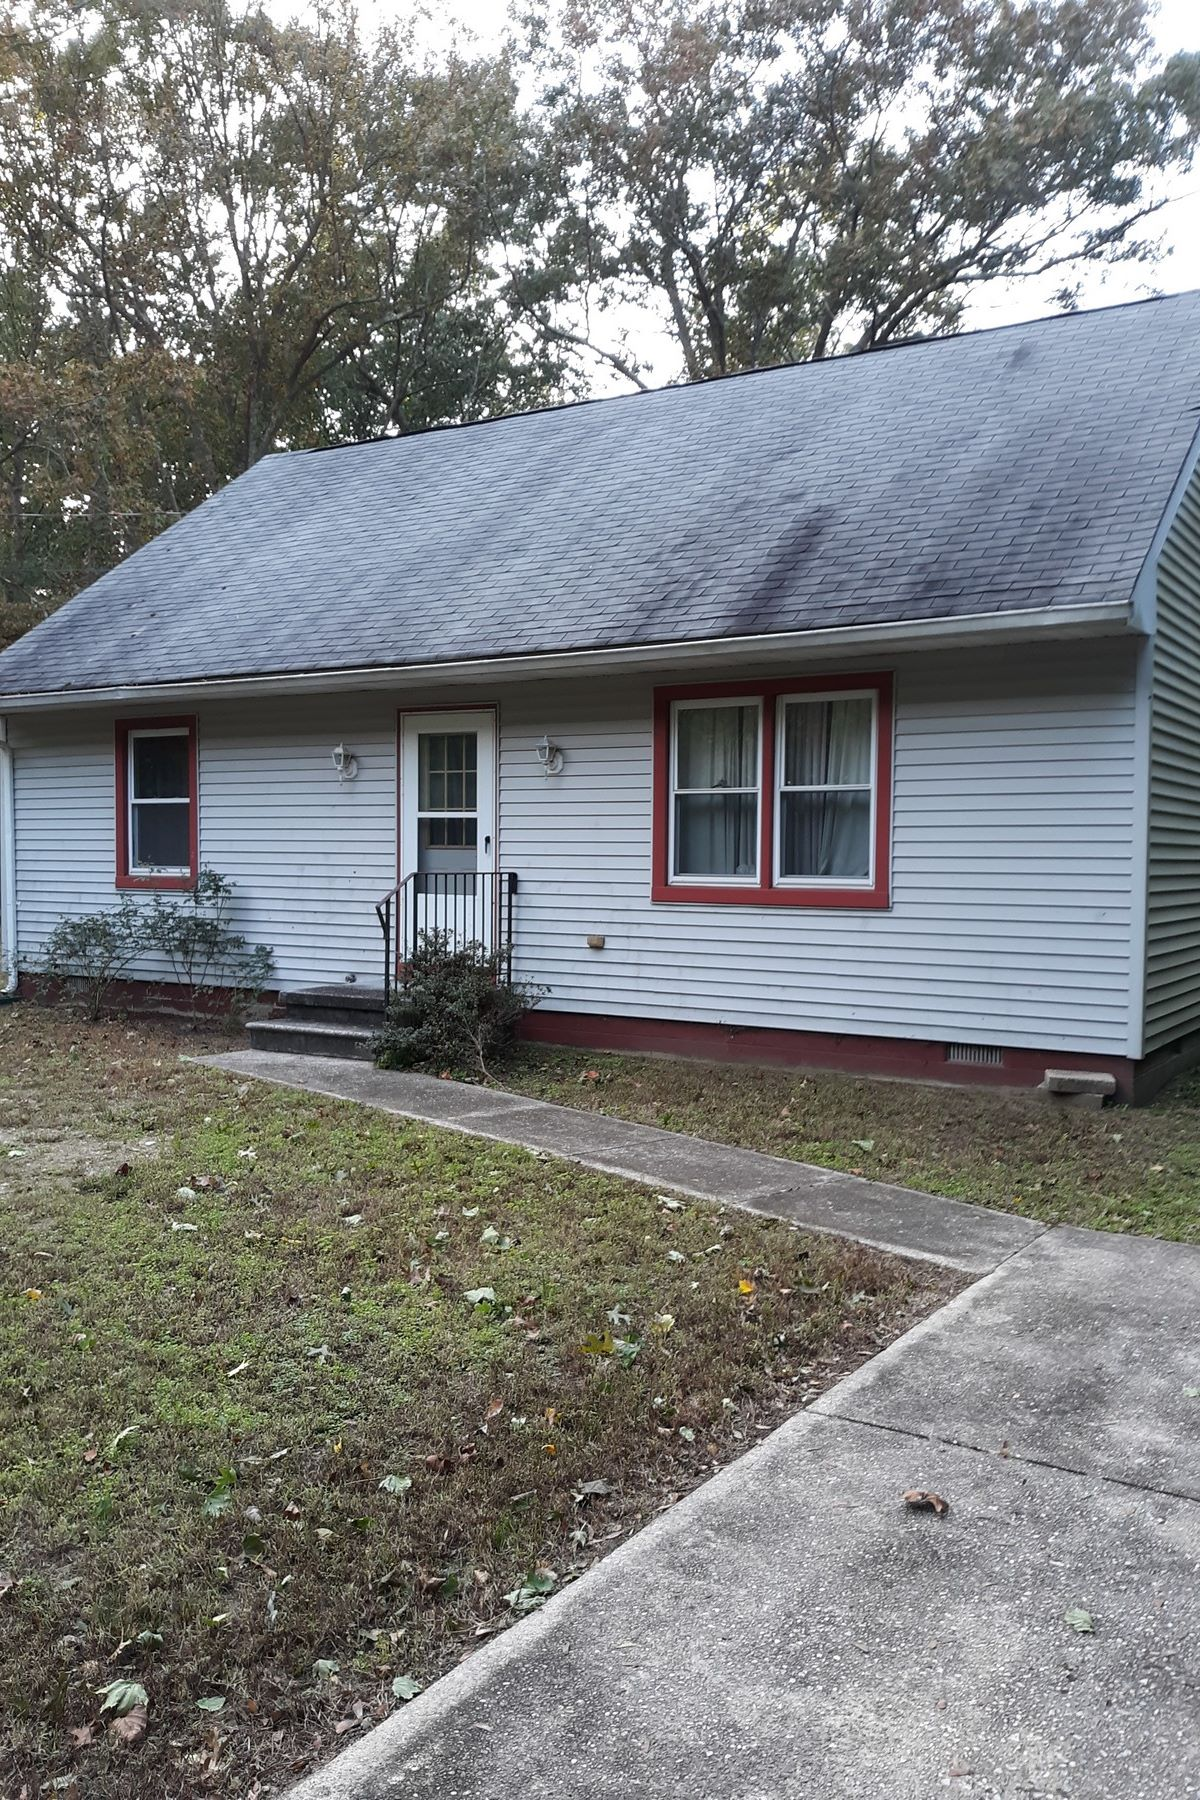 Single Family Home for Sale at 612 Isaccs Ave 612 Isaacs Ave, Woodbine, New Jersey 08270 United States